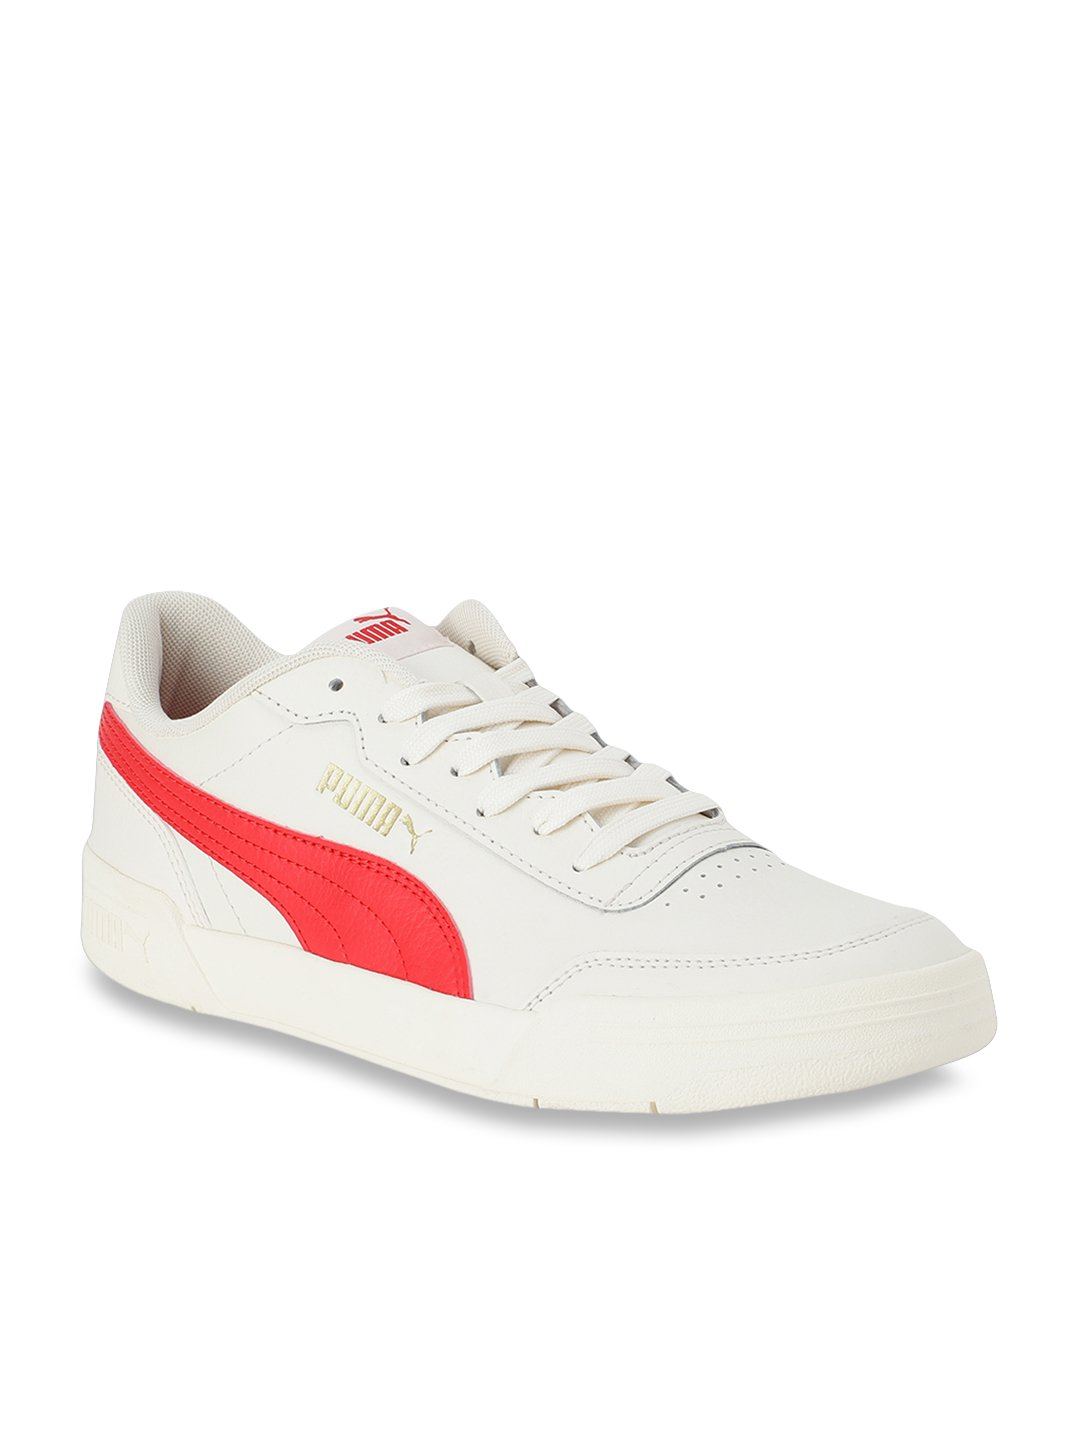 Buy Puma Caracal Whisper White Sneakers for Men at Best Price @ Tata CLiQ